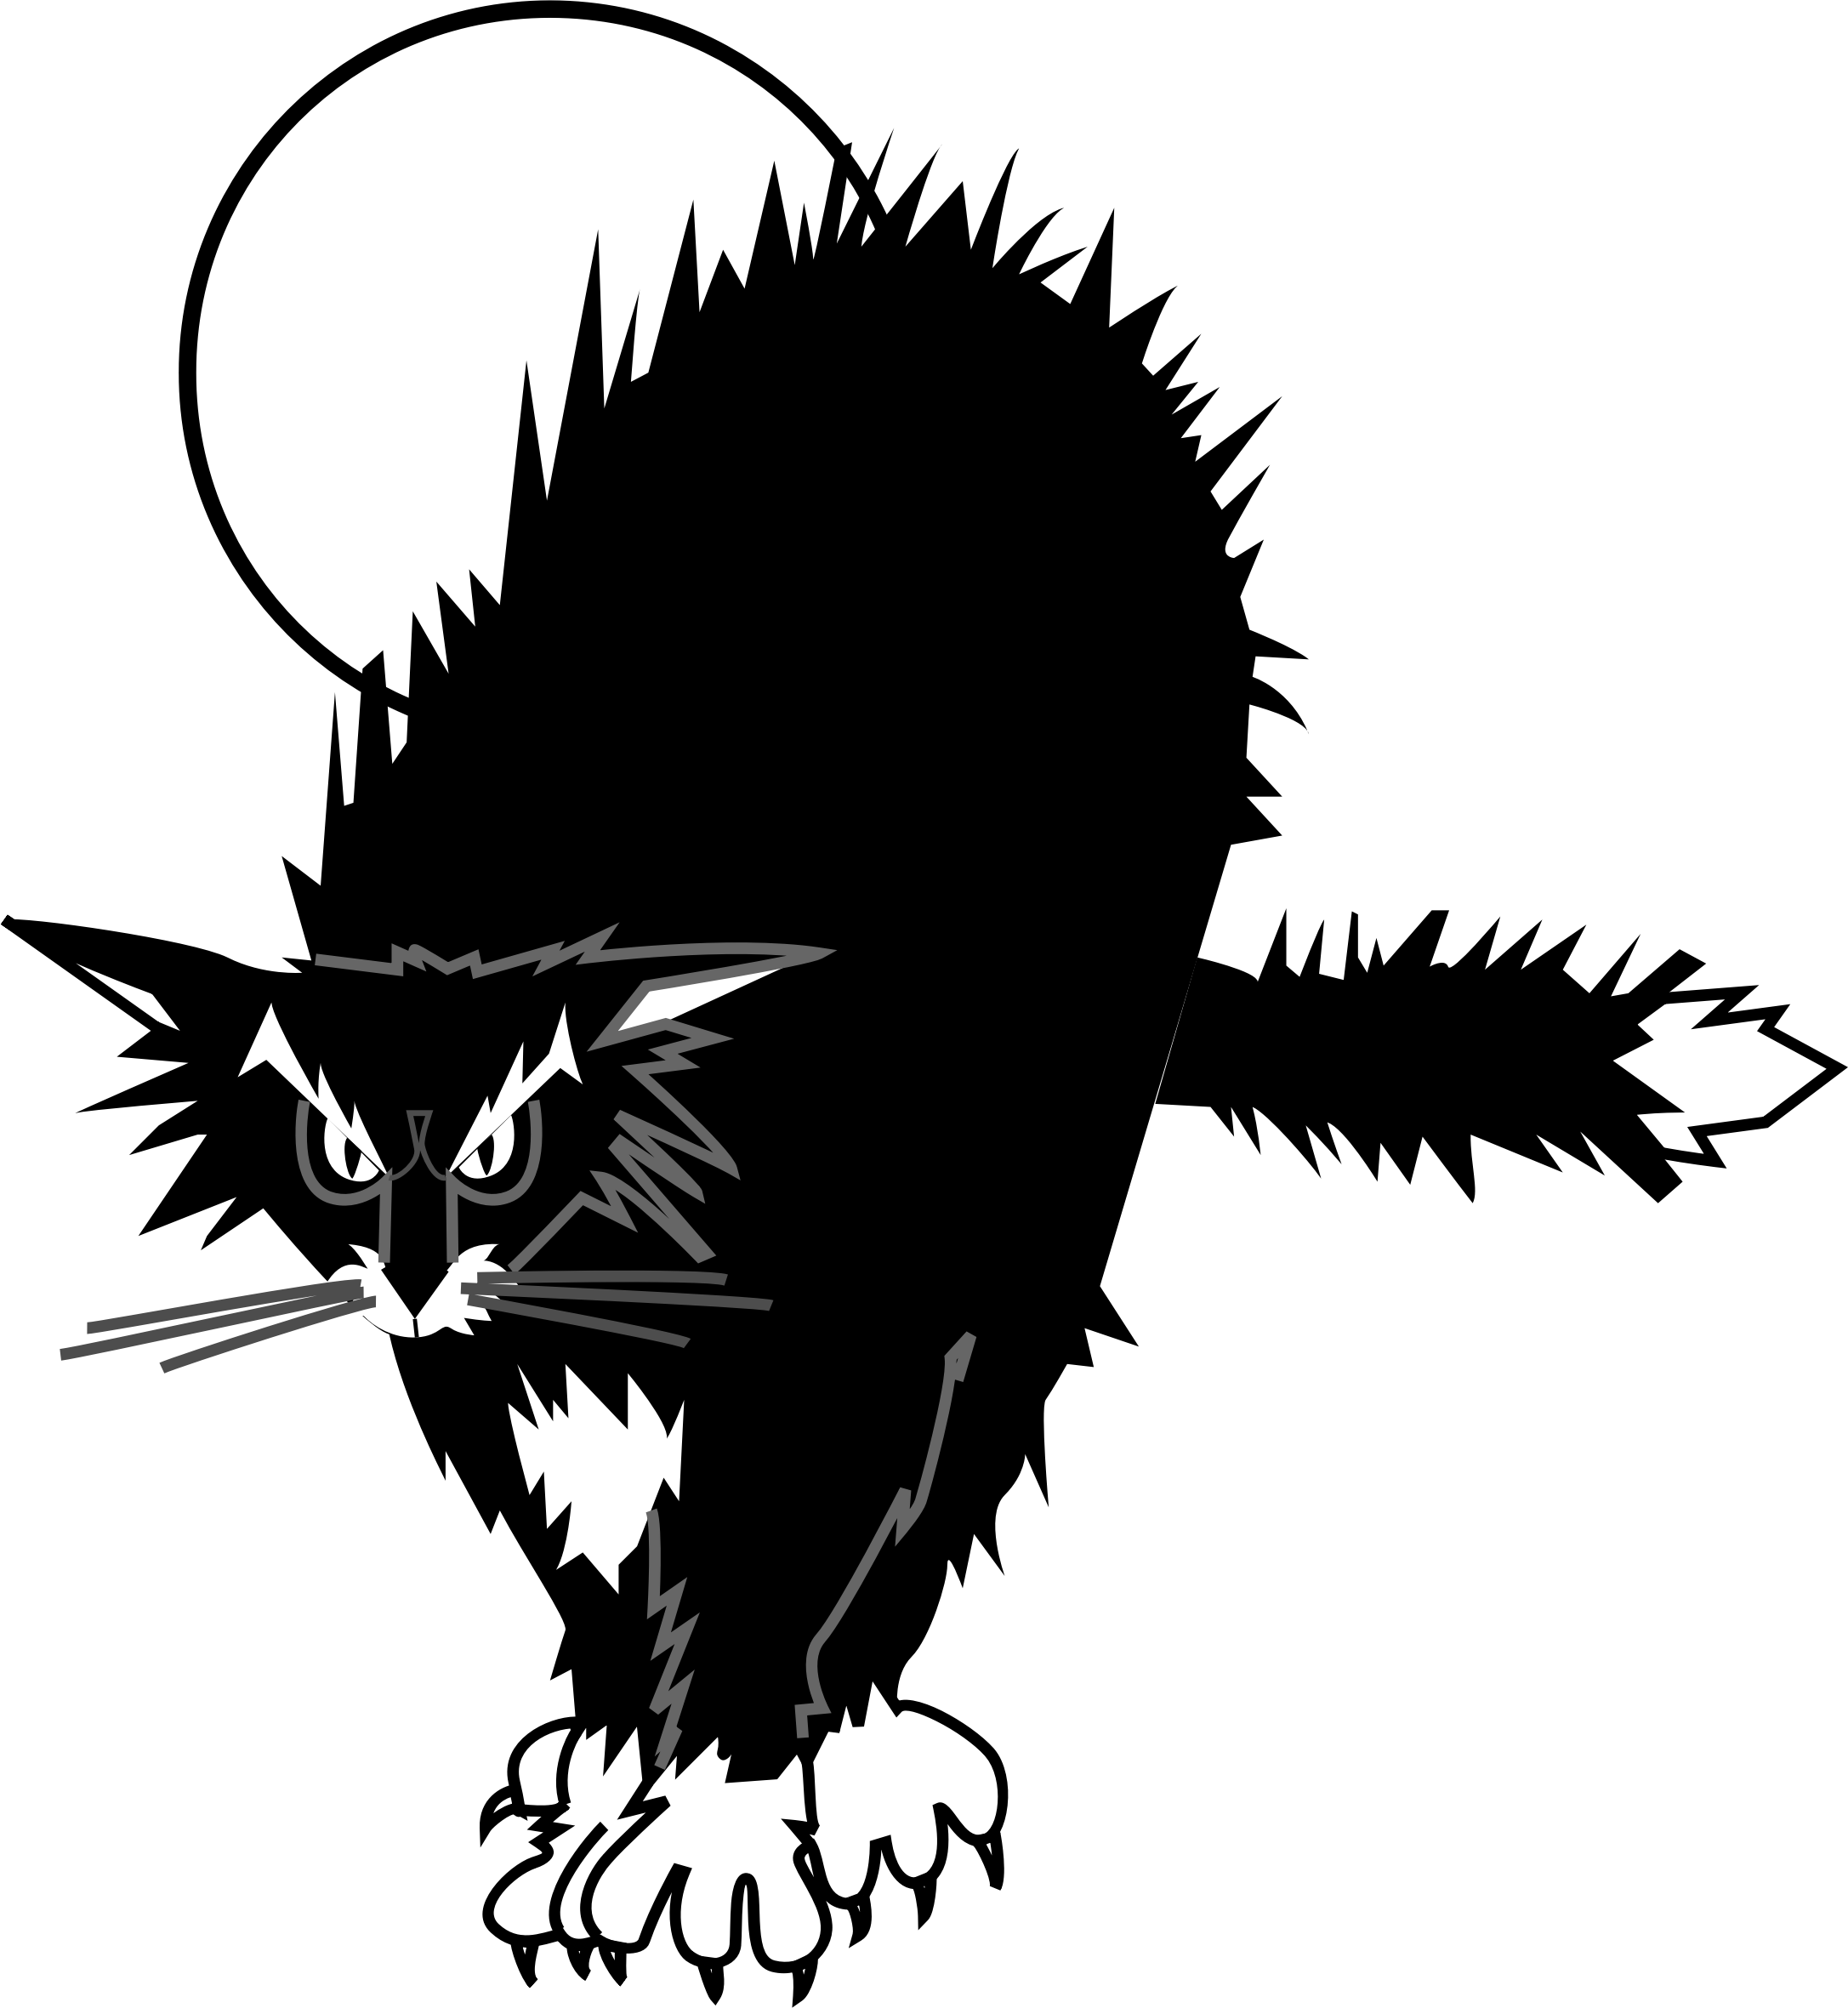 black cat by cactus cowboy